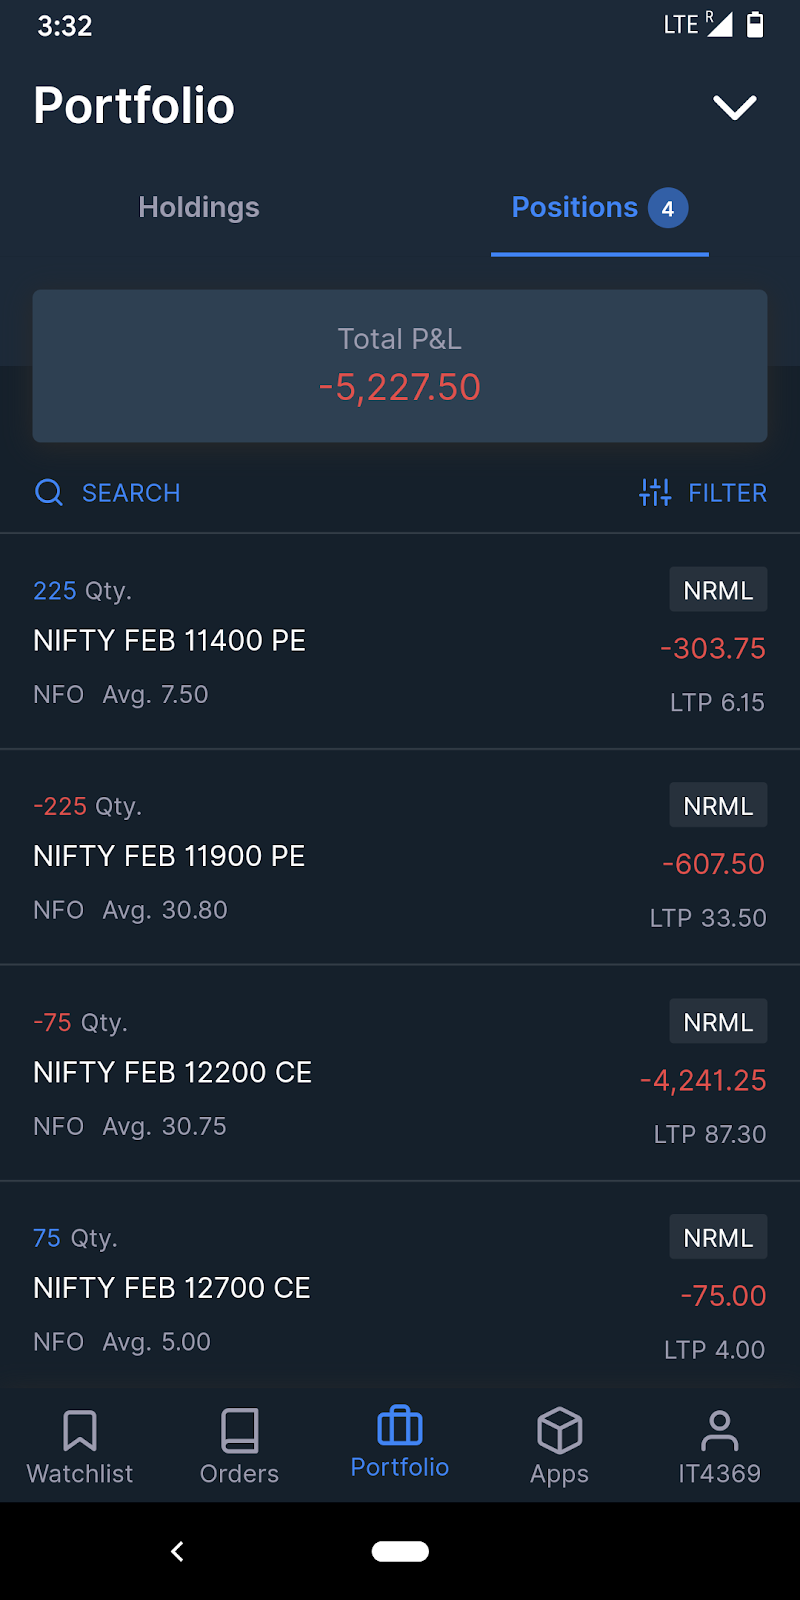 P&L for 13 Feb